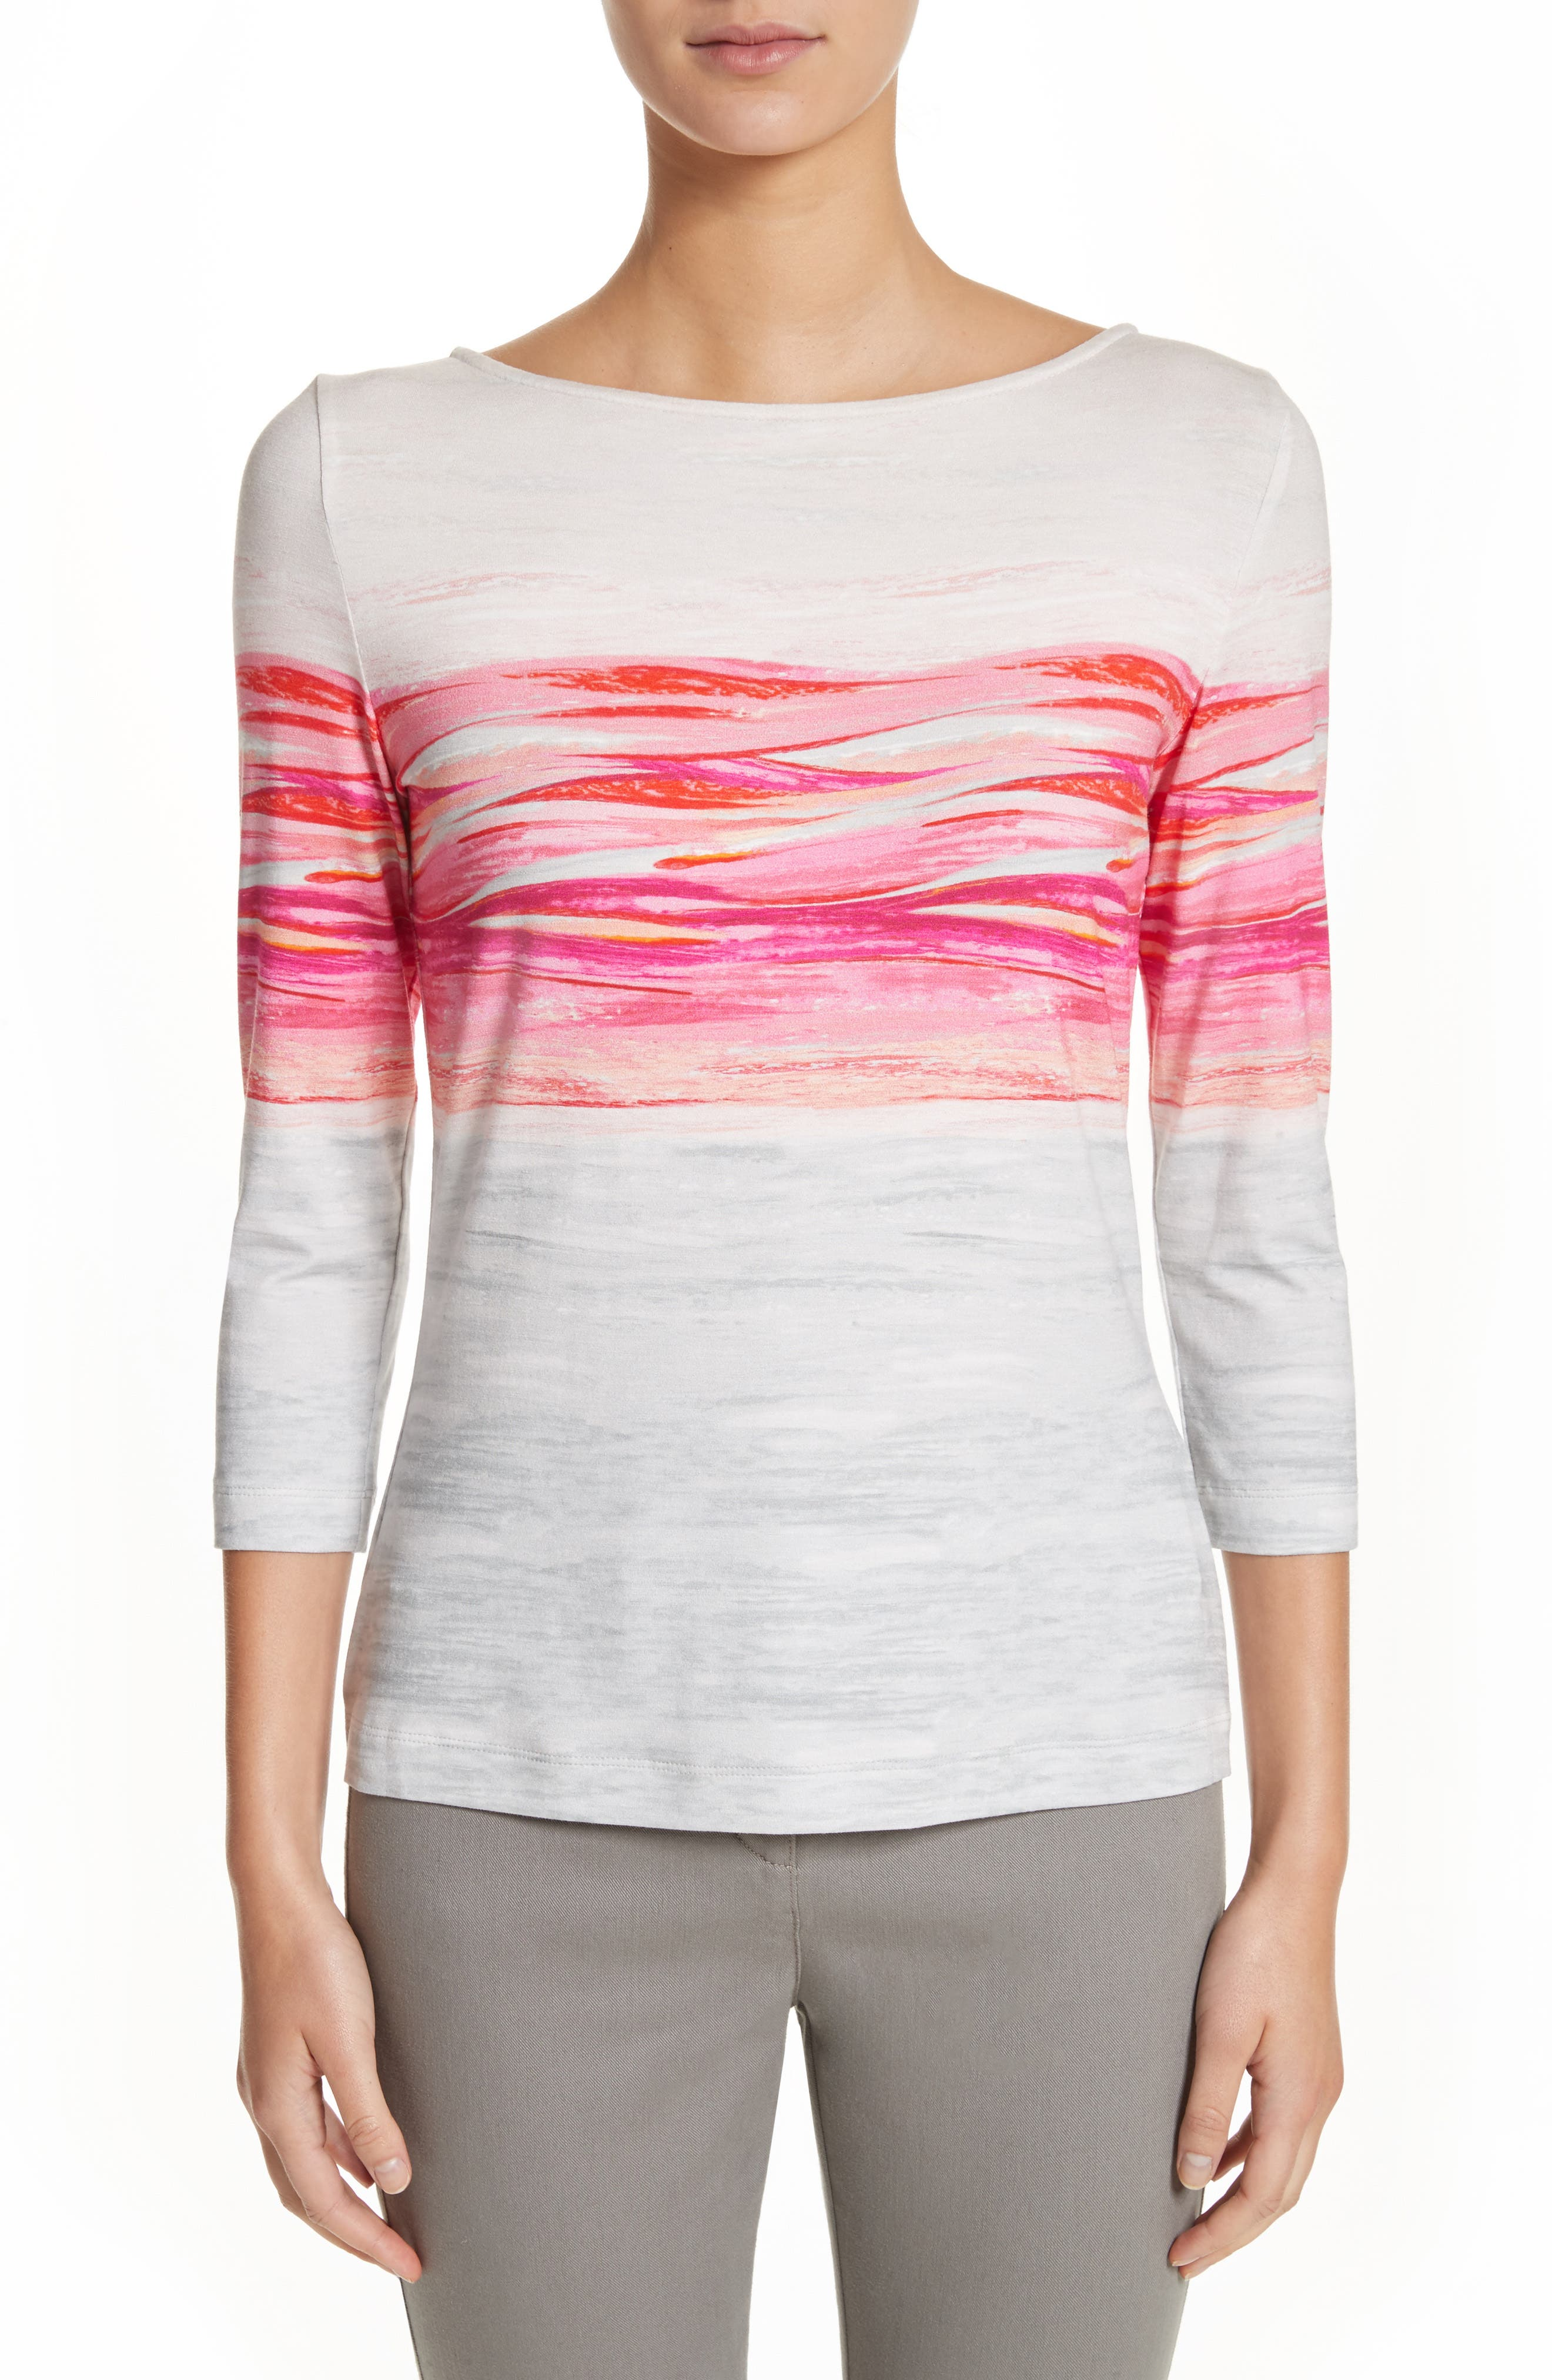 Textured Brushstroke Print Jersey Top,                             Main thumbnail 1, color,                             Bright Coral Multi